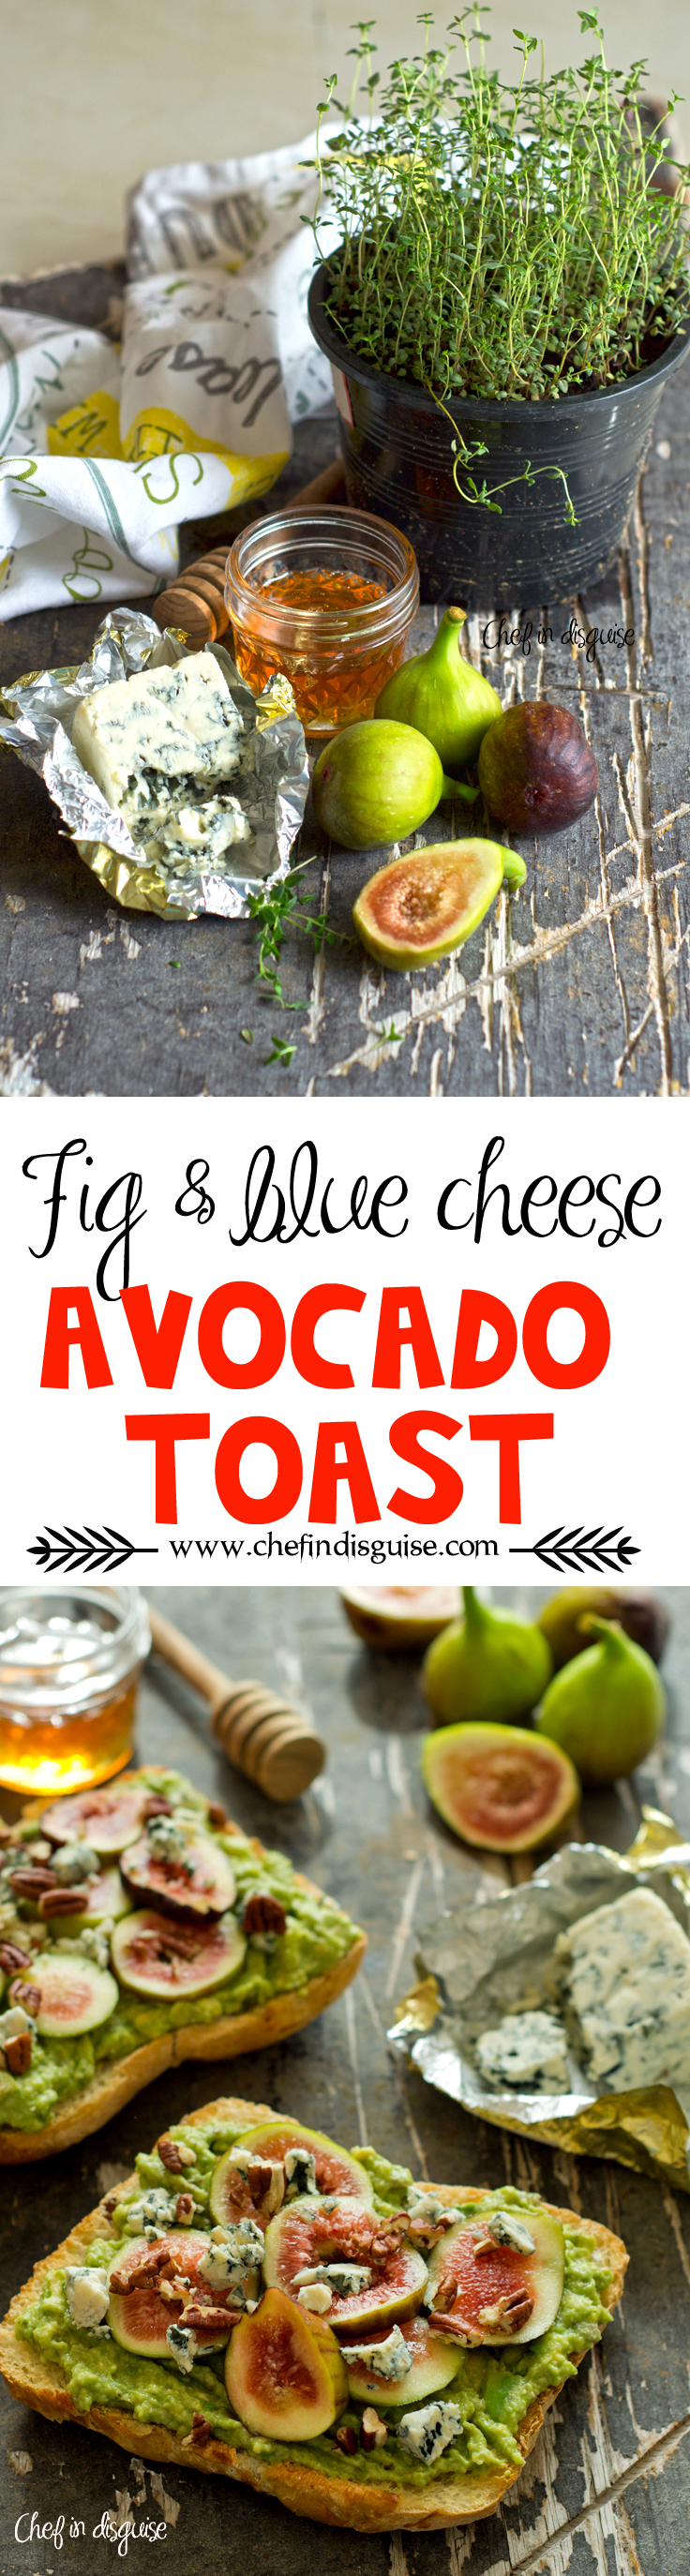 fig and blue cheese.jpg